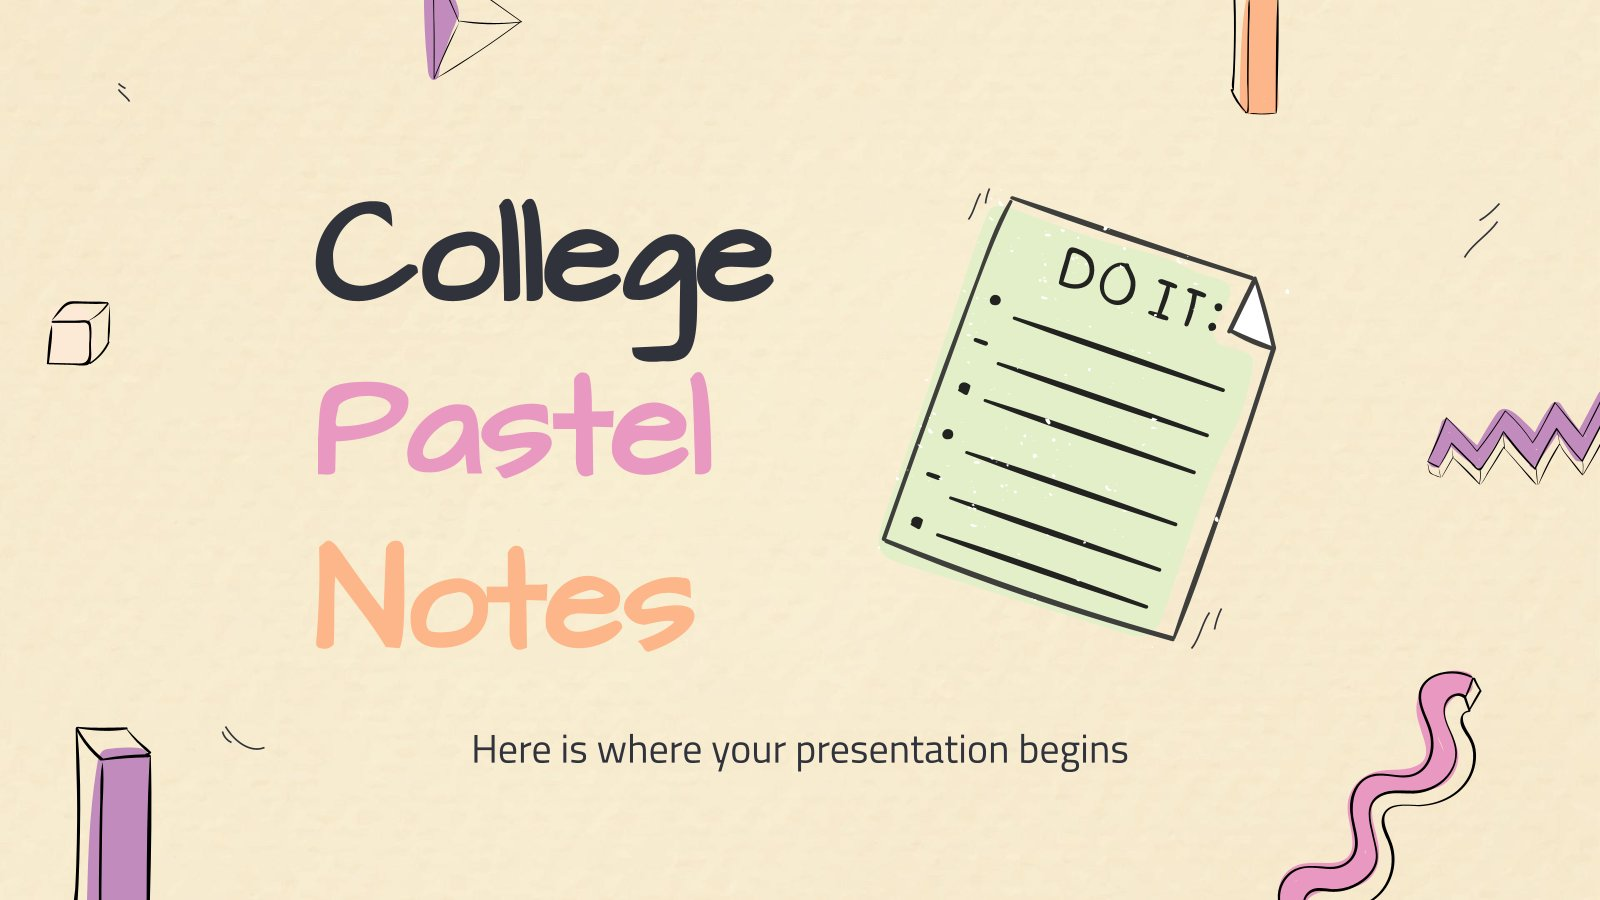 College Pastel Notes presentation template